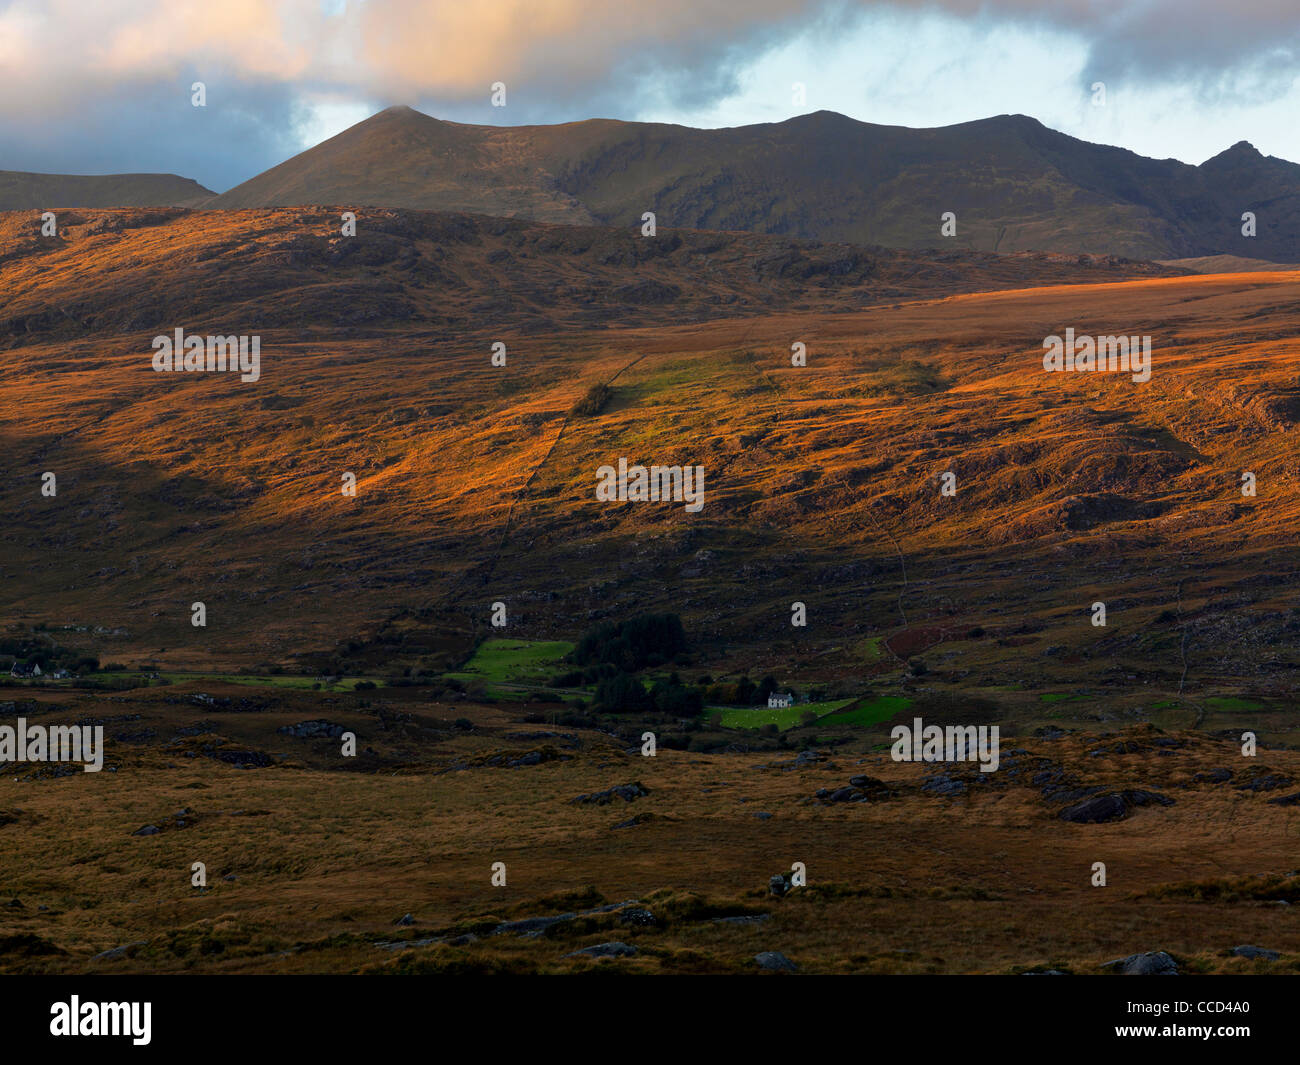 Macgillycudy's Reeks from the Upper Loughs,Killarney, Co. Kerry. - Stock Image